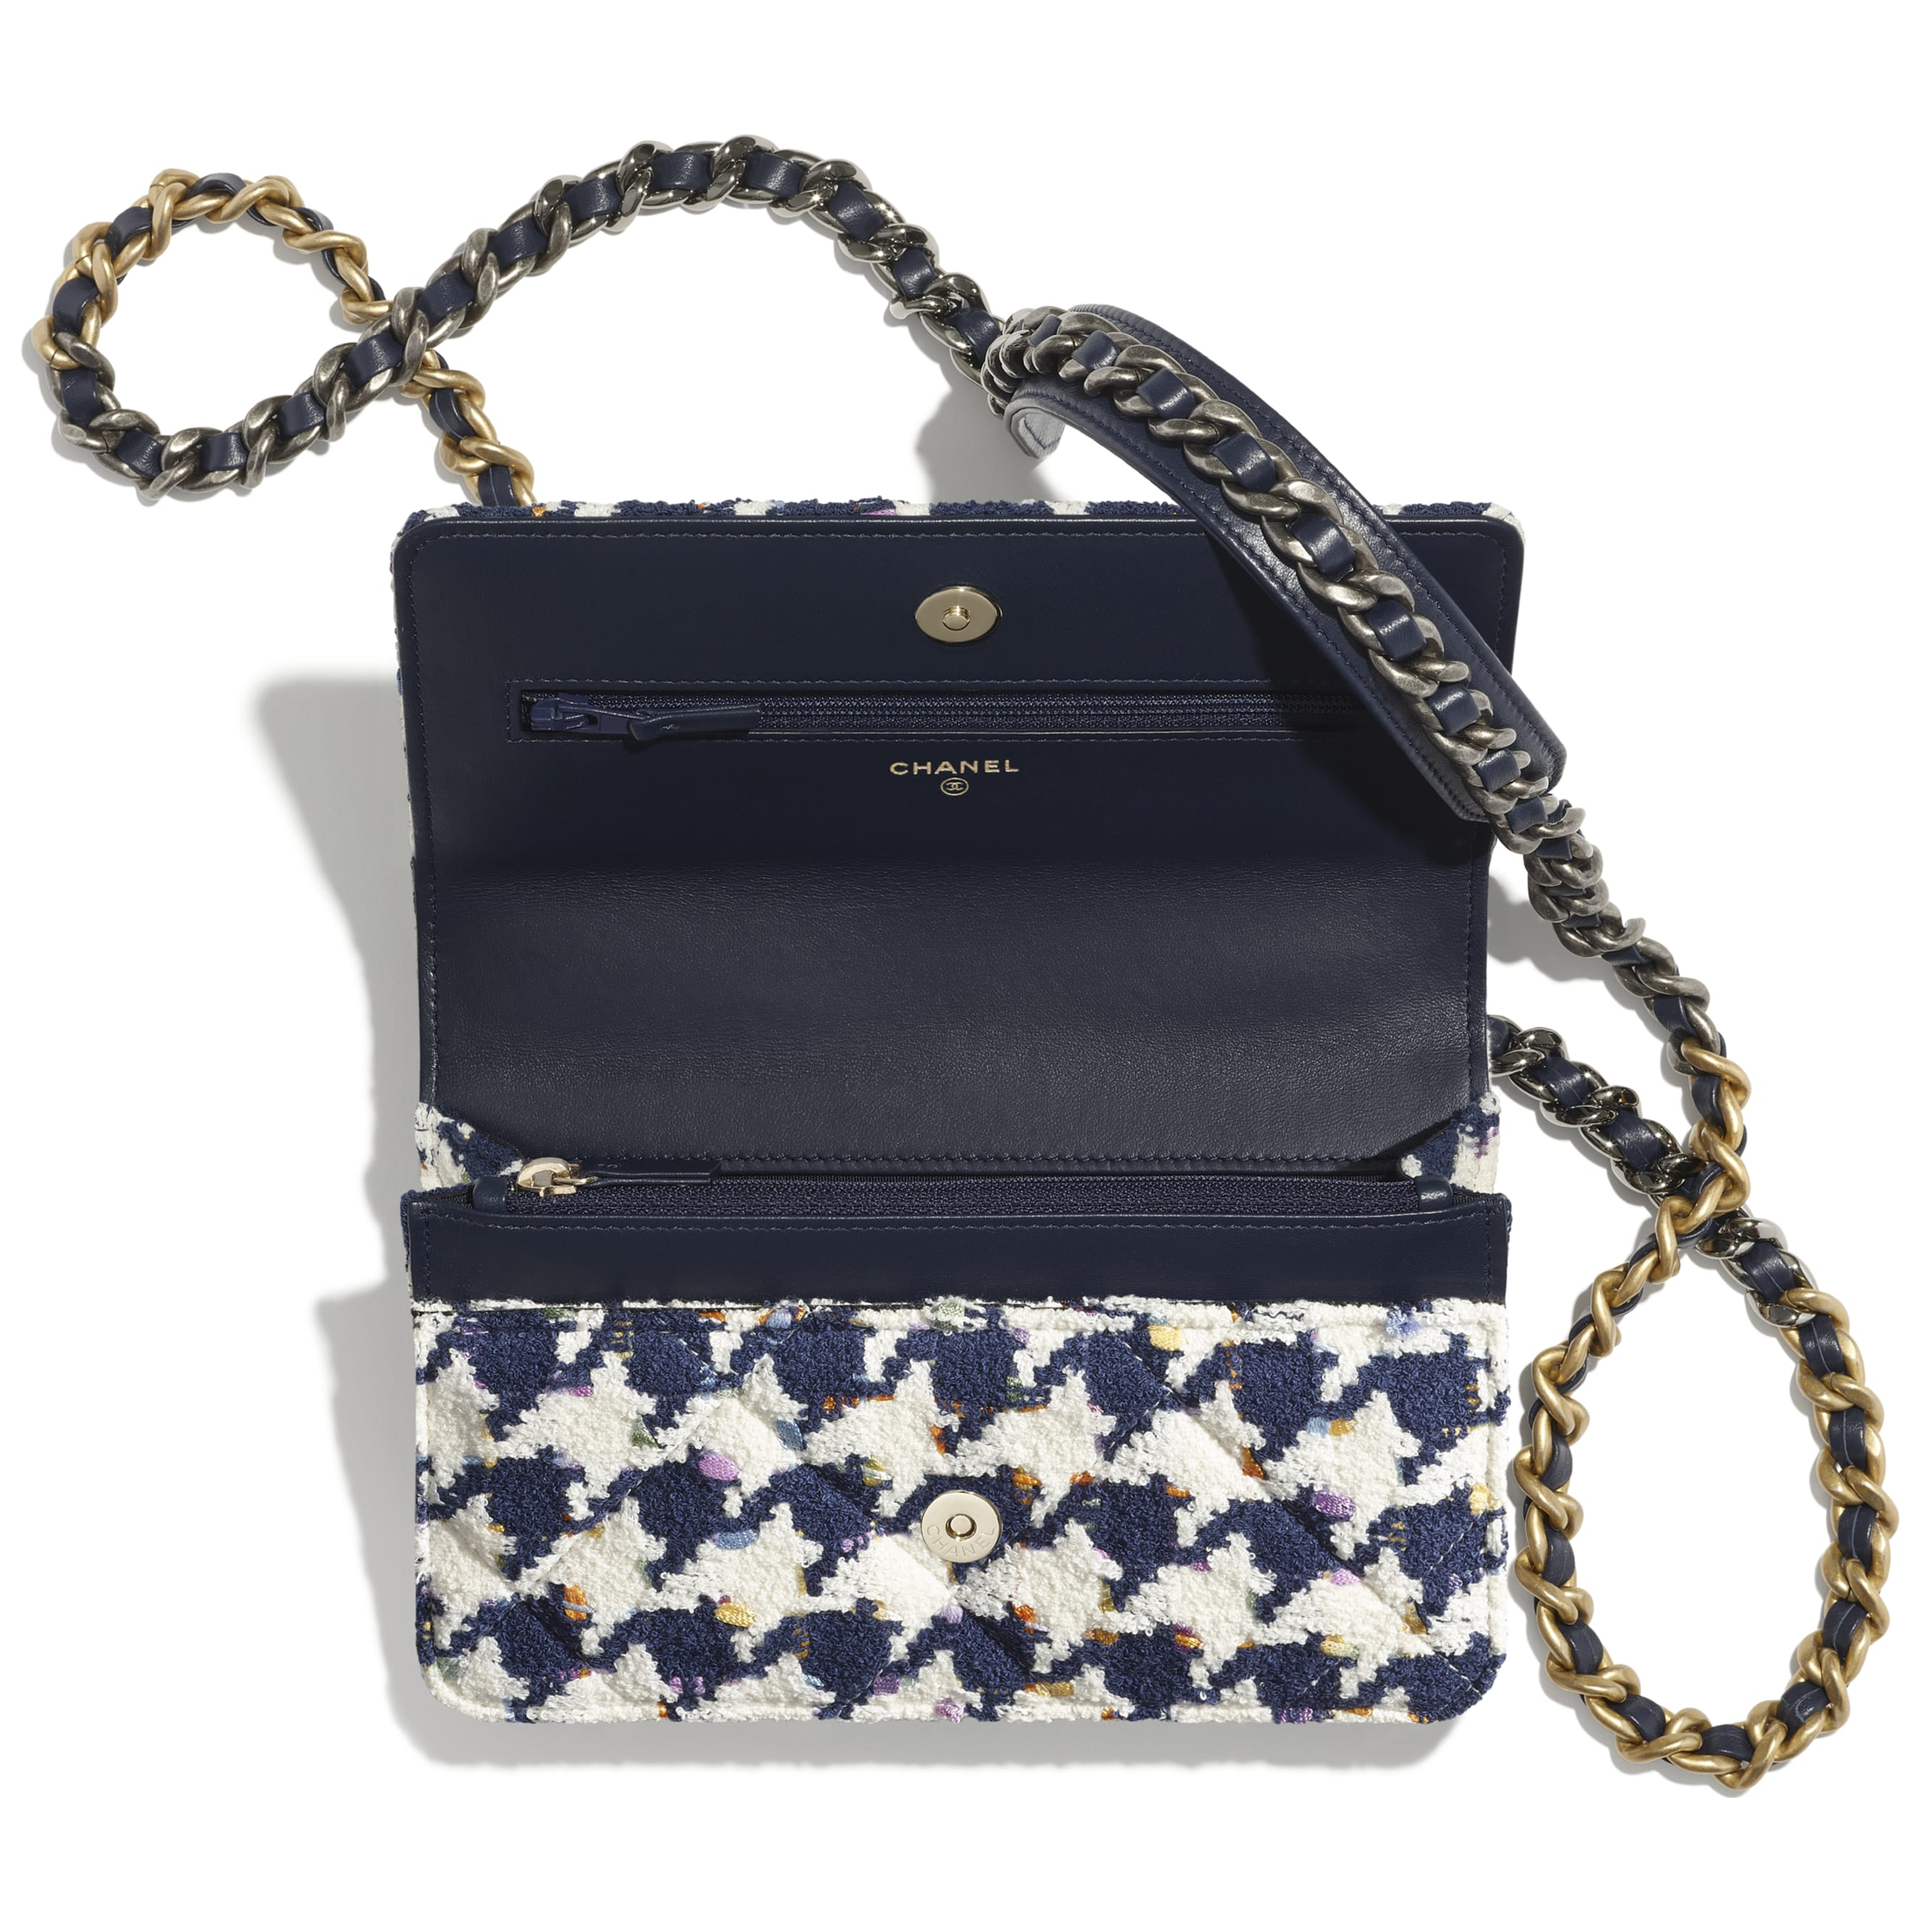 CHANEL 19 Wallet on Chain - Ecru, Navy Blue & Multicolour - Tweed, Gold-Tone, Silver-Tone & Ruthenium-Finish Metal - CHANEL - Alternative view - see standard sized version